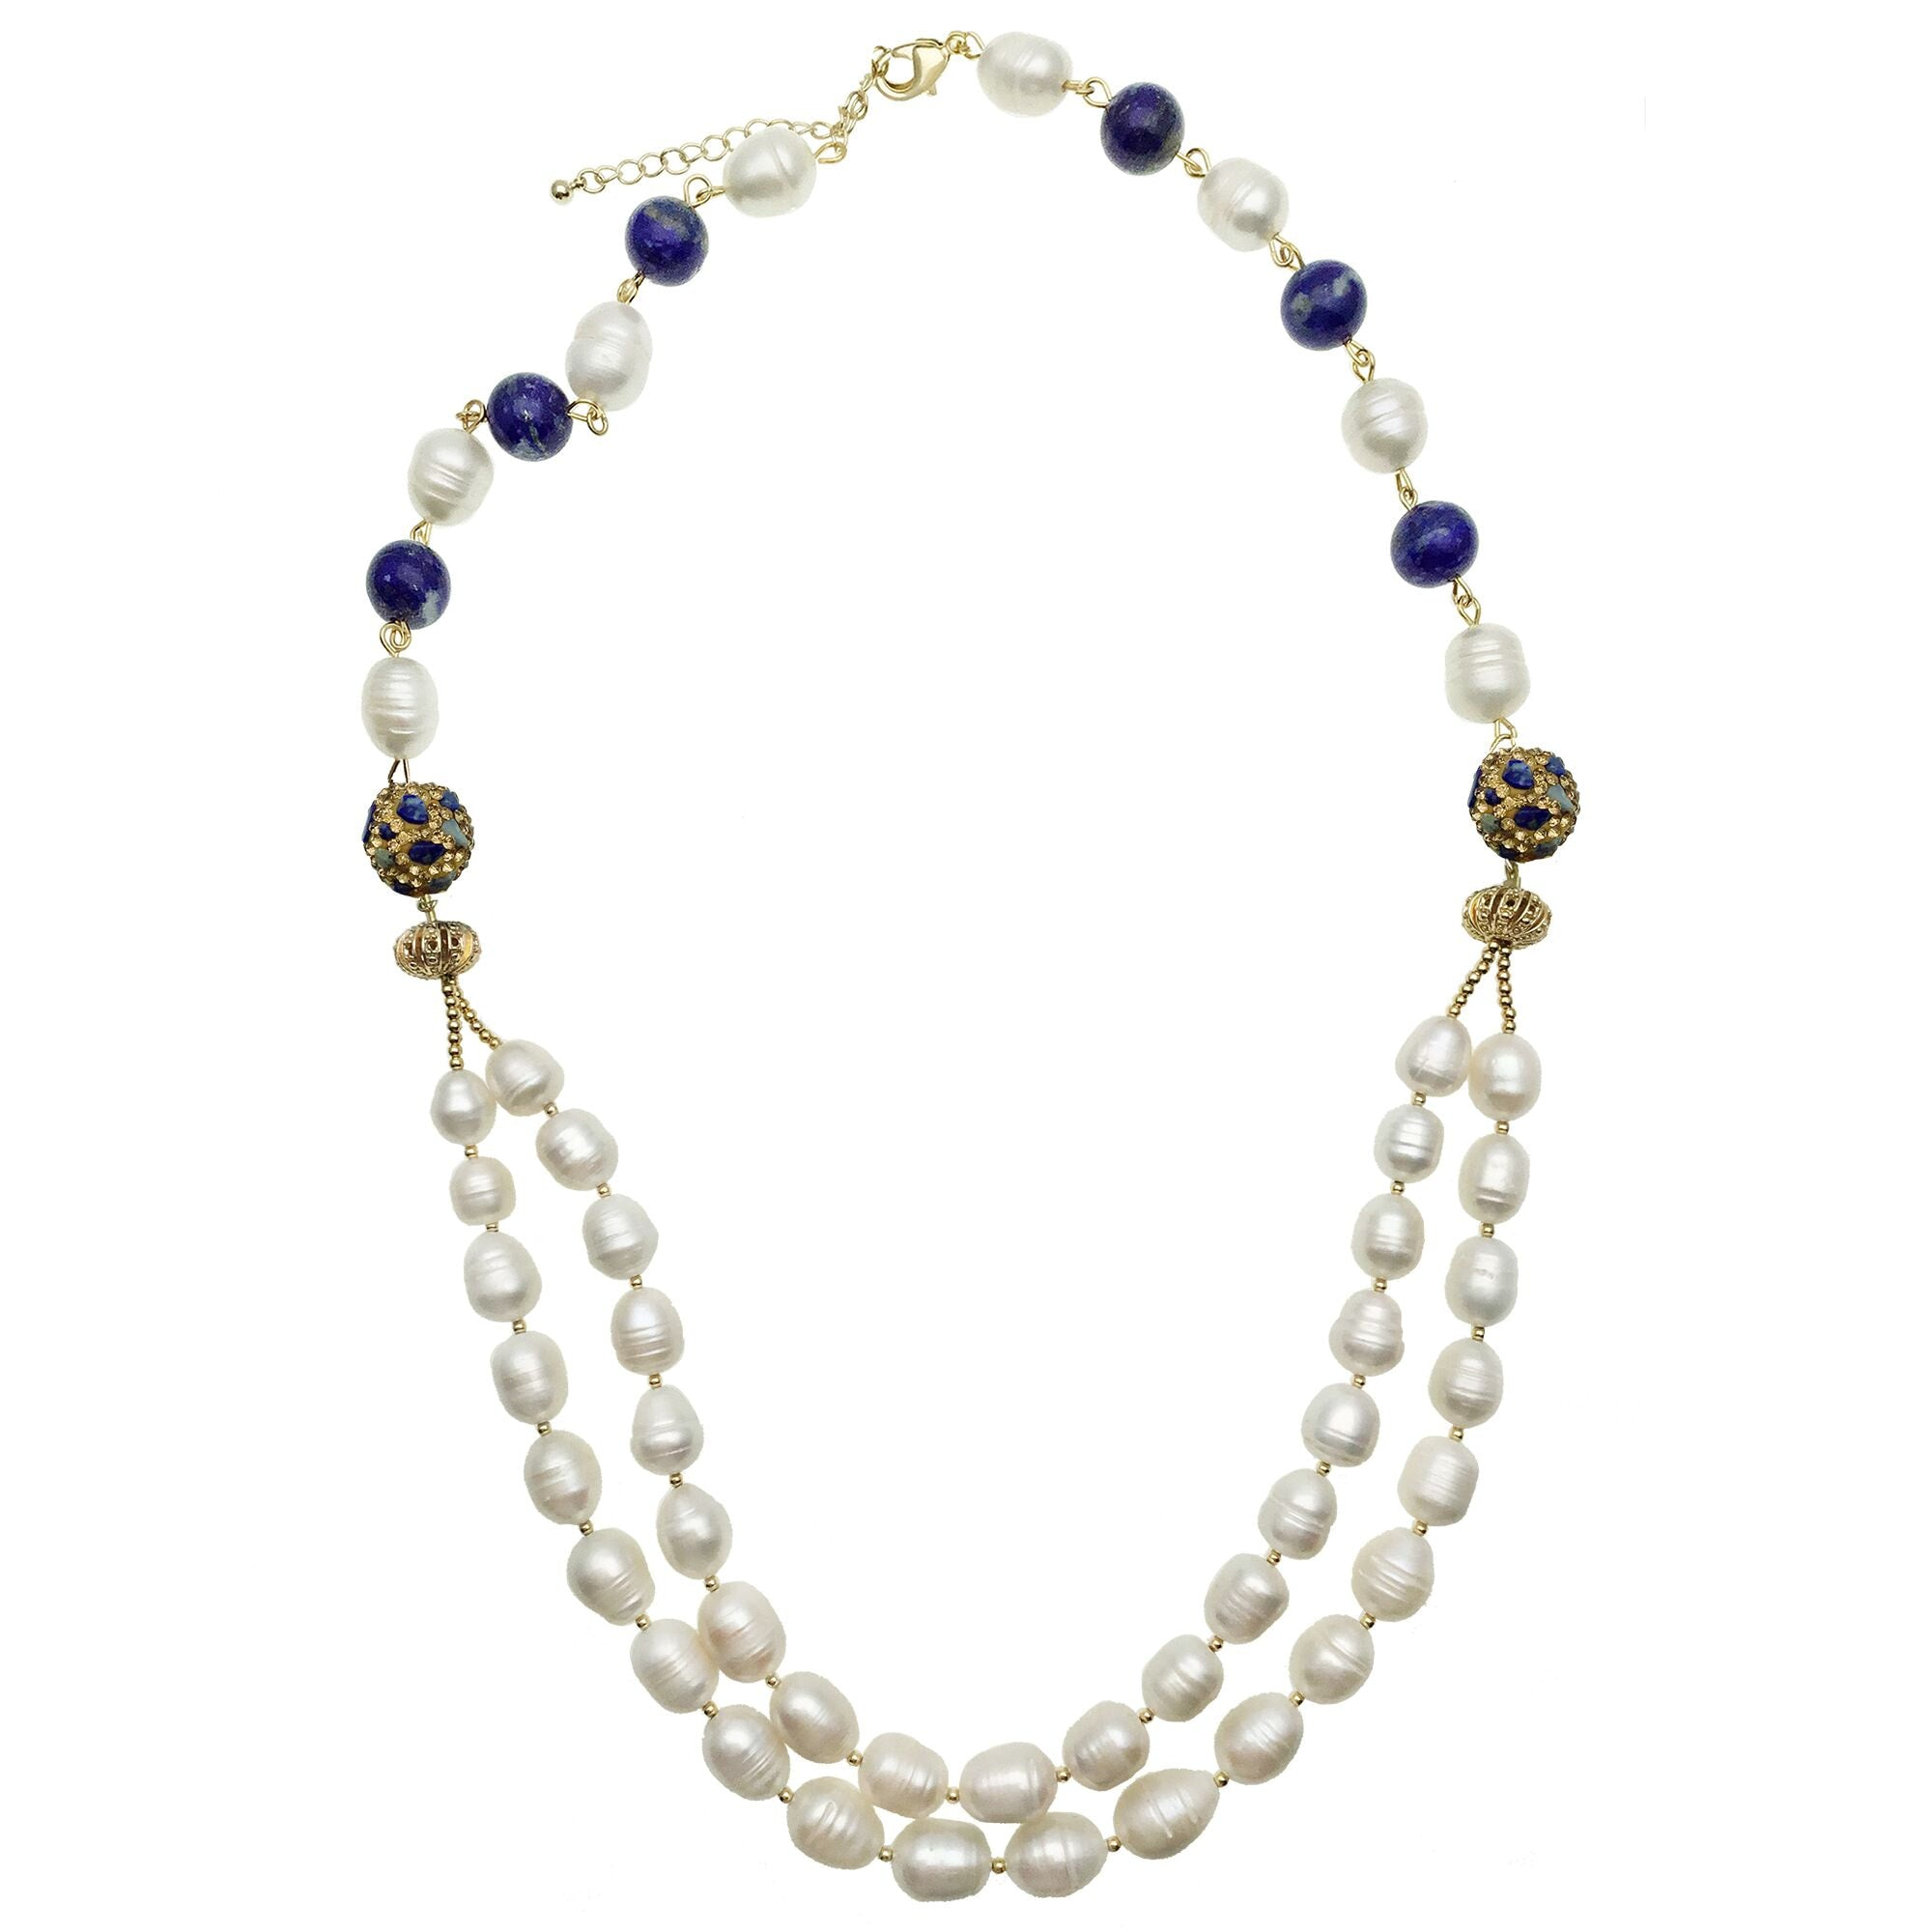 Double Stranded Pearl and Lapis Lazuli Bead Necklace - Shopidpearl